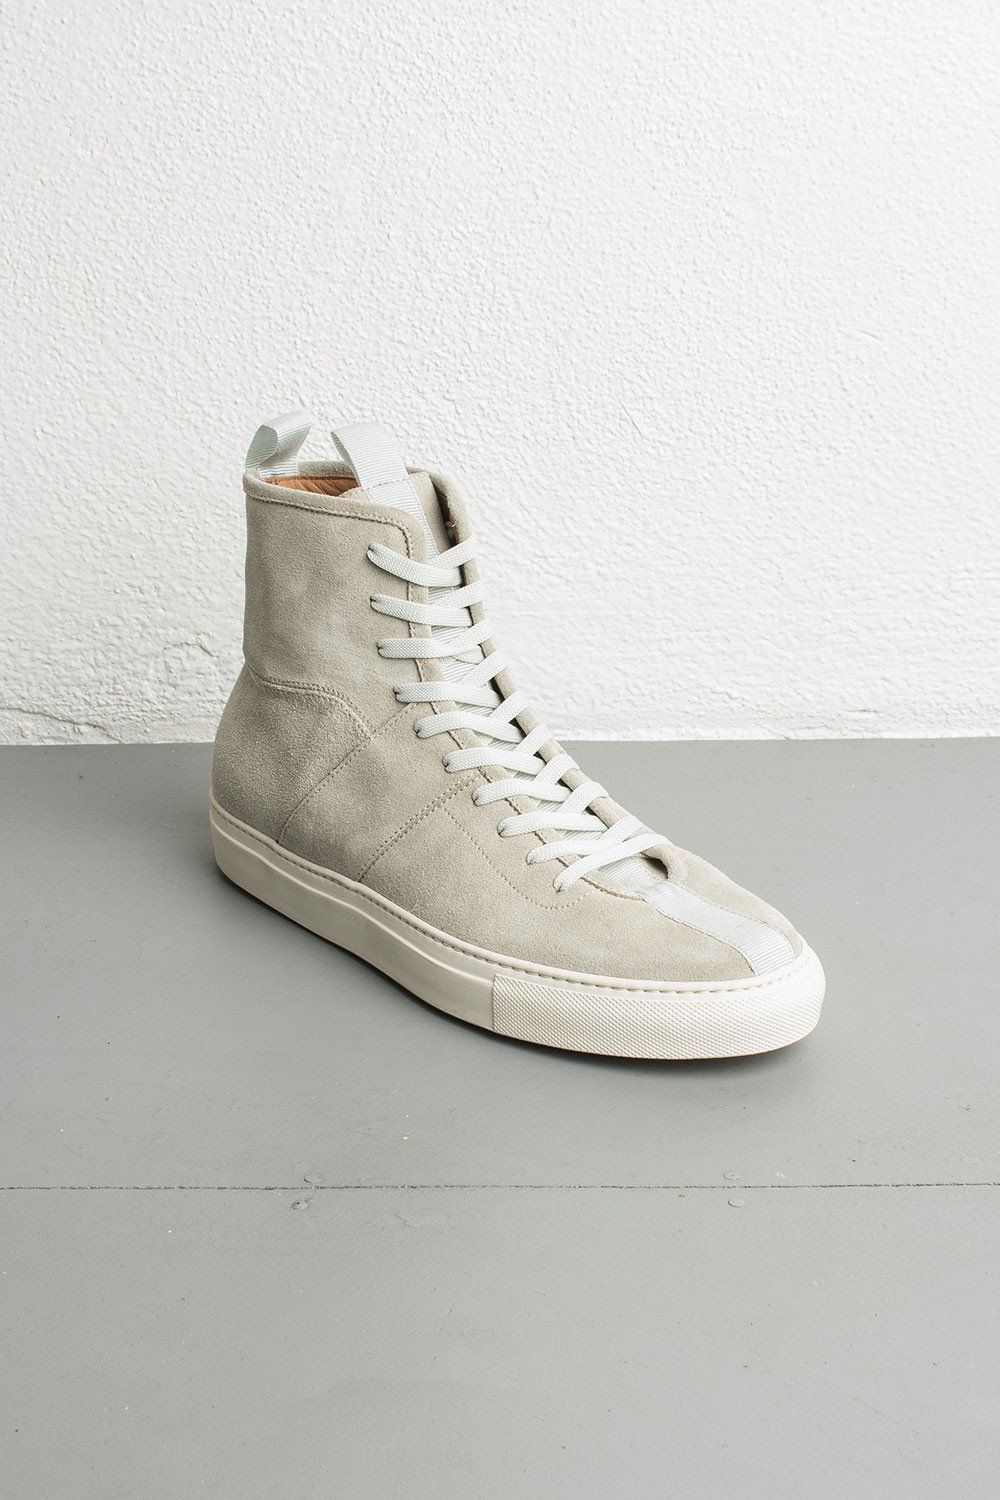 1f0f0414cb97e sage high top sneakers by daniel patrick